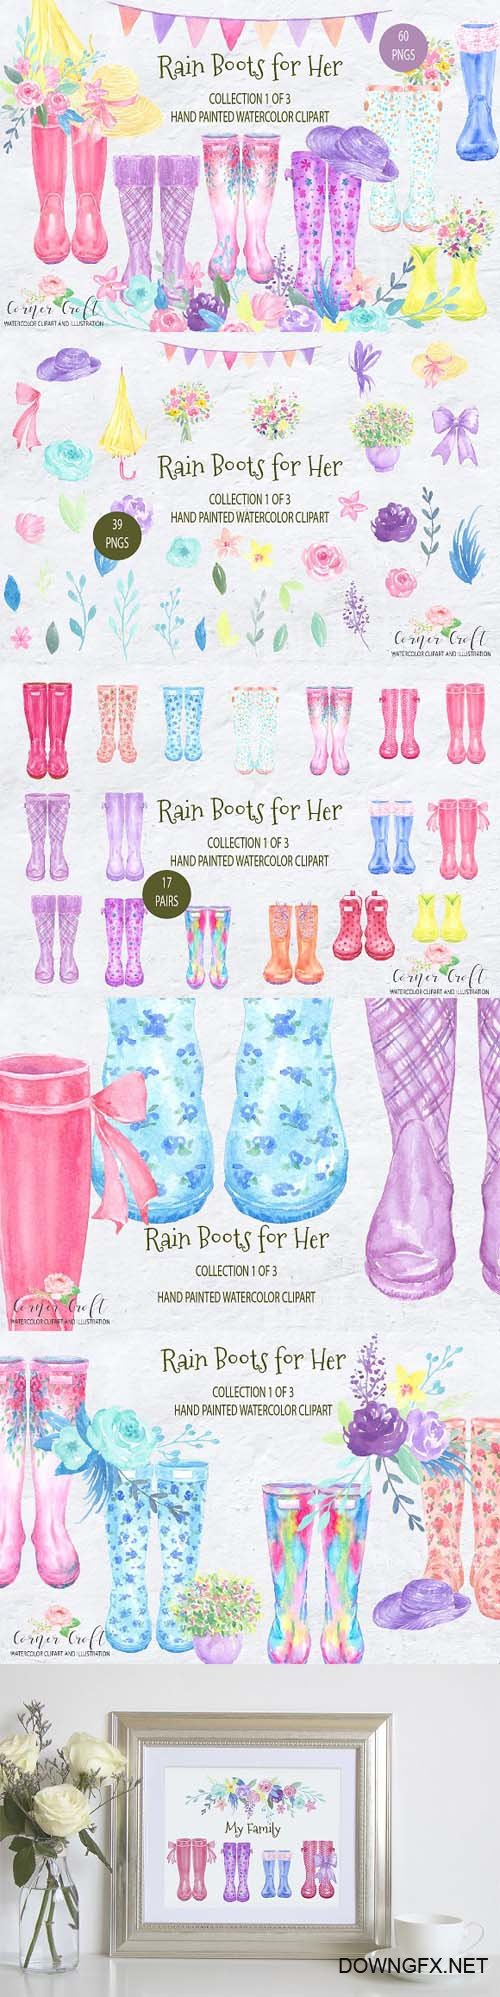 Watercolor Rain Boots for her 2103988